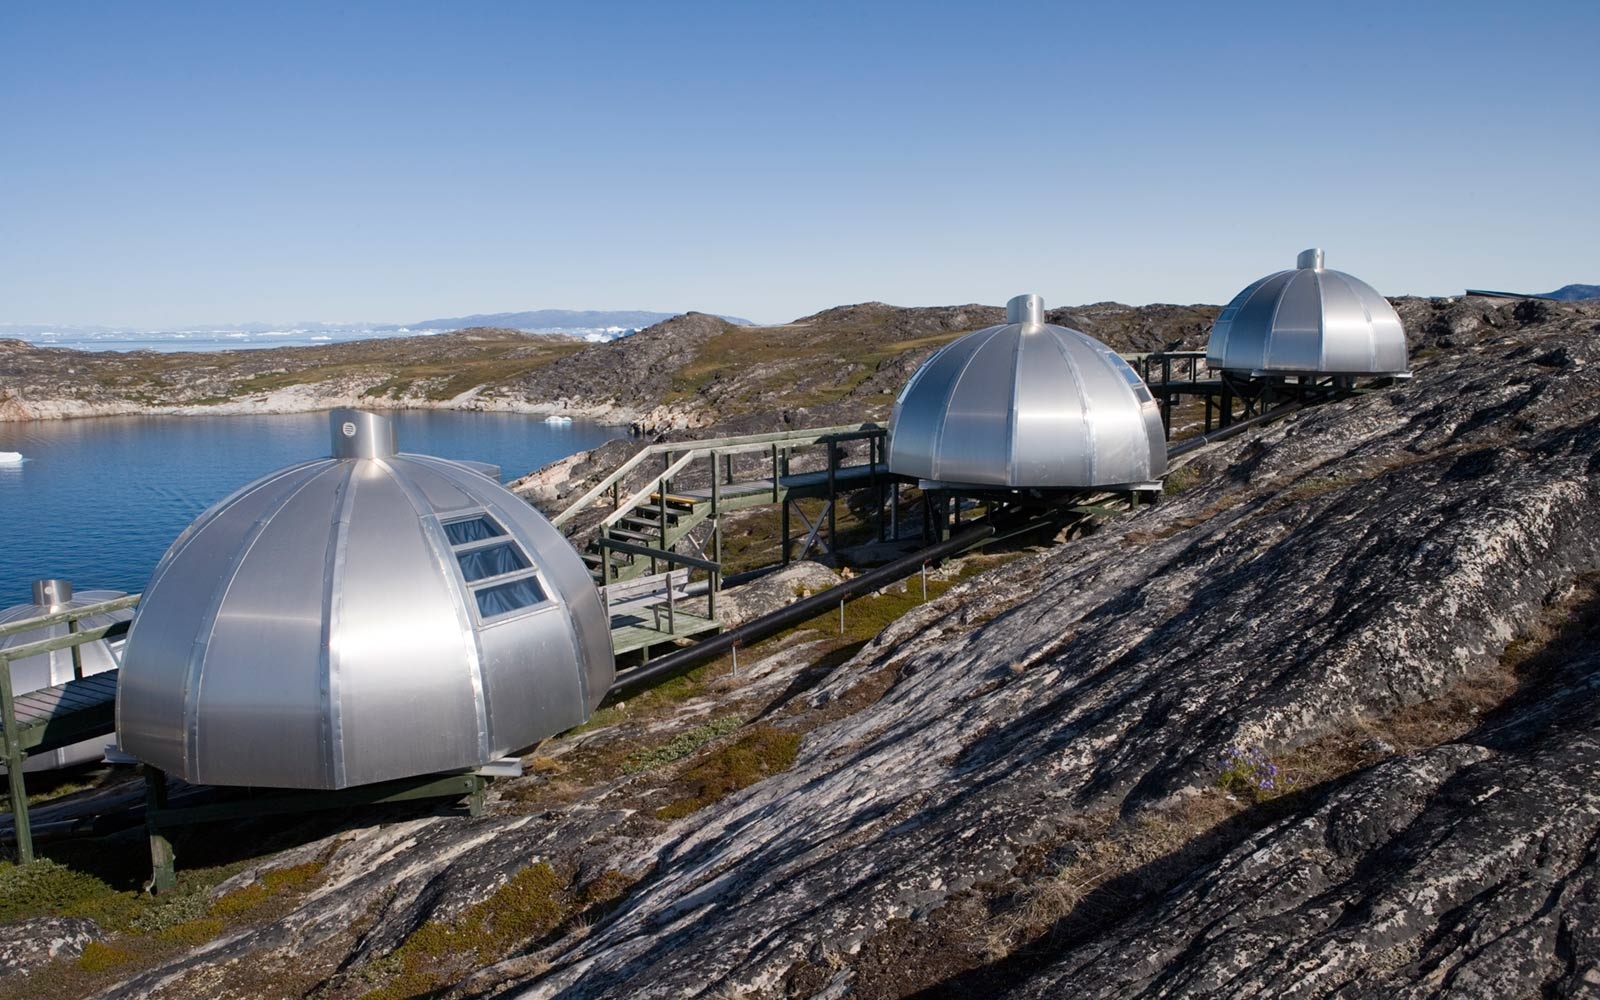 How to Stay in an Igloo on a Fjord in Greenland